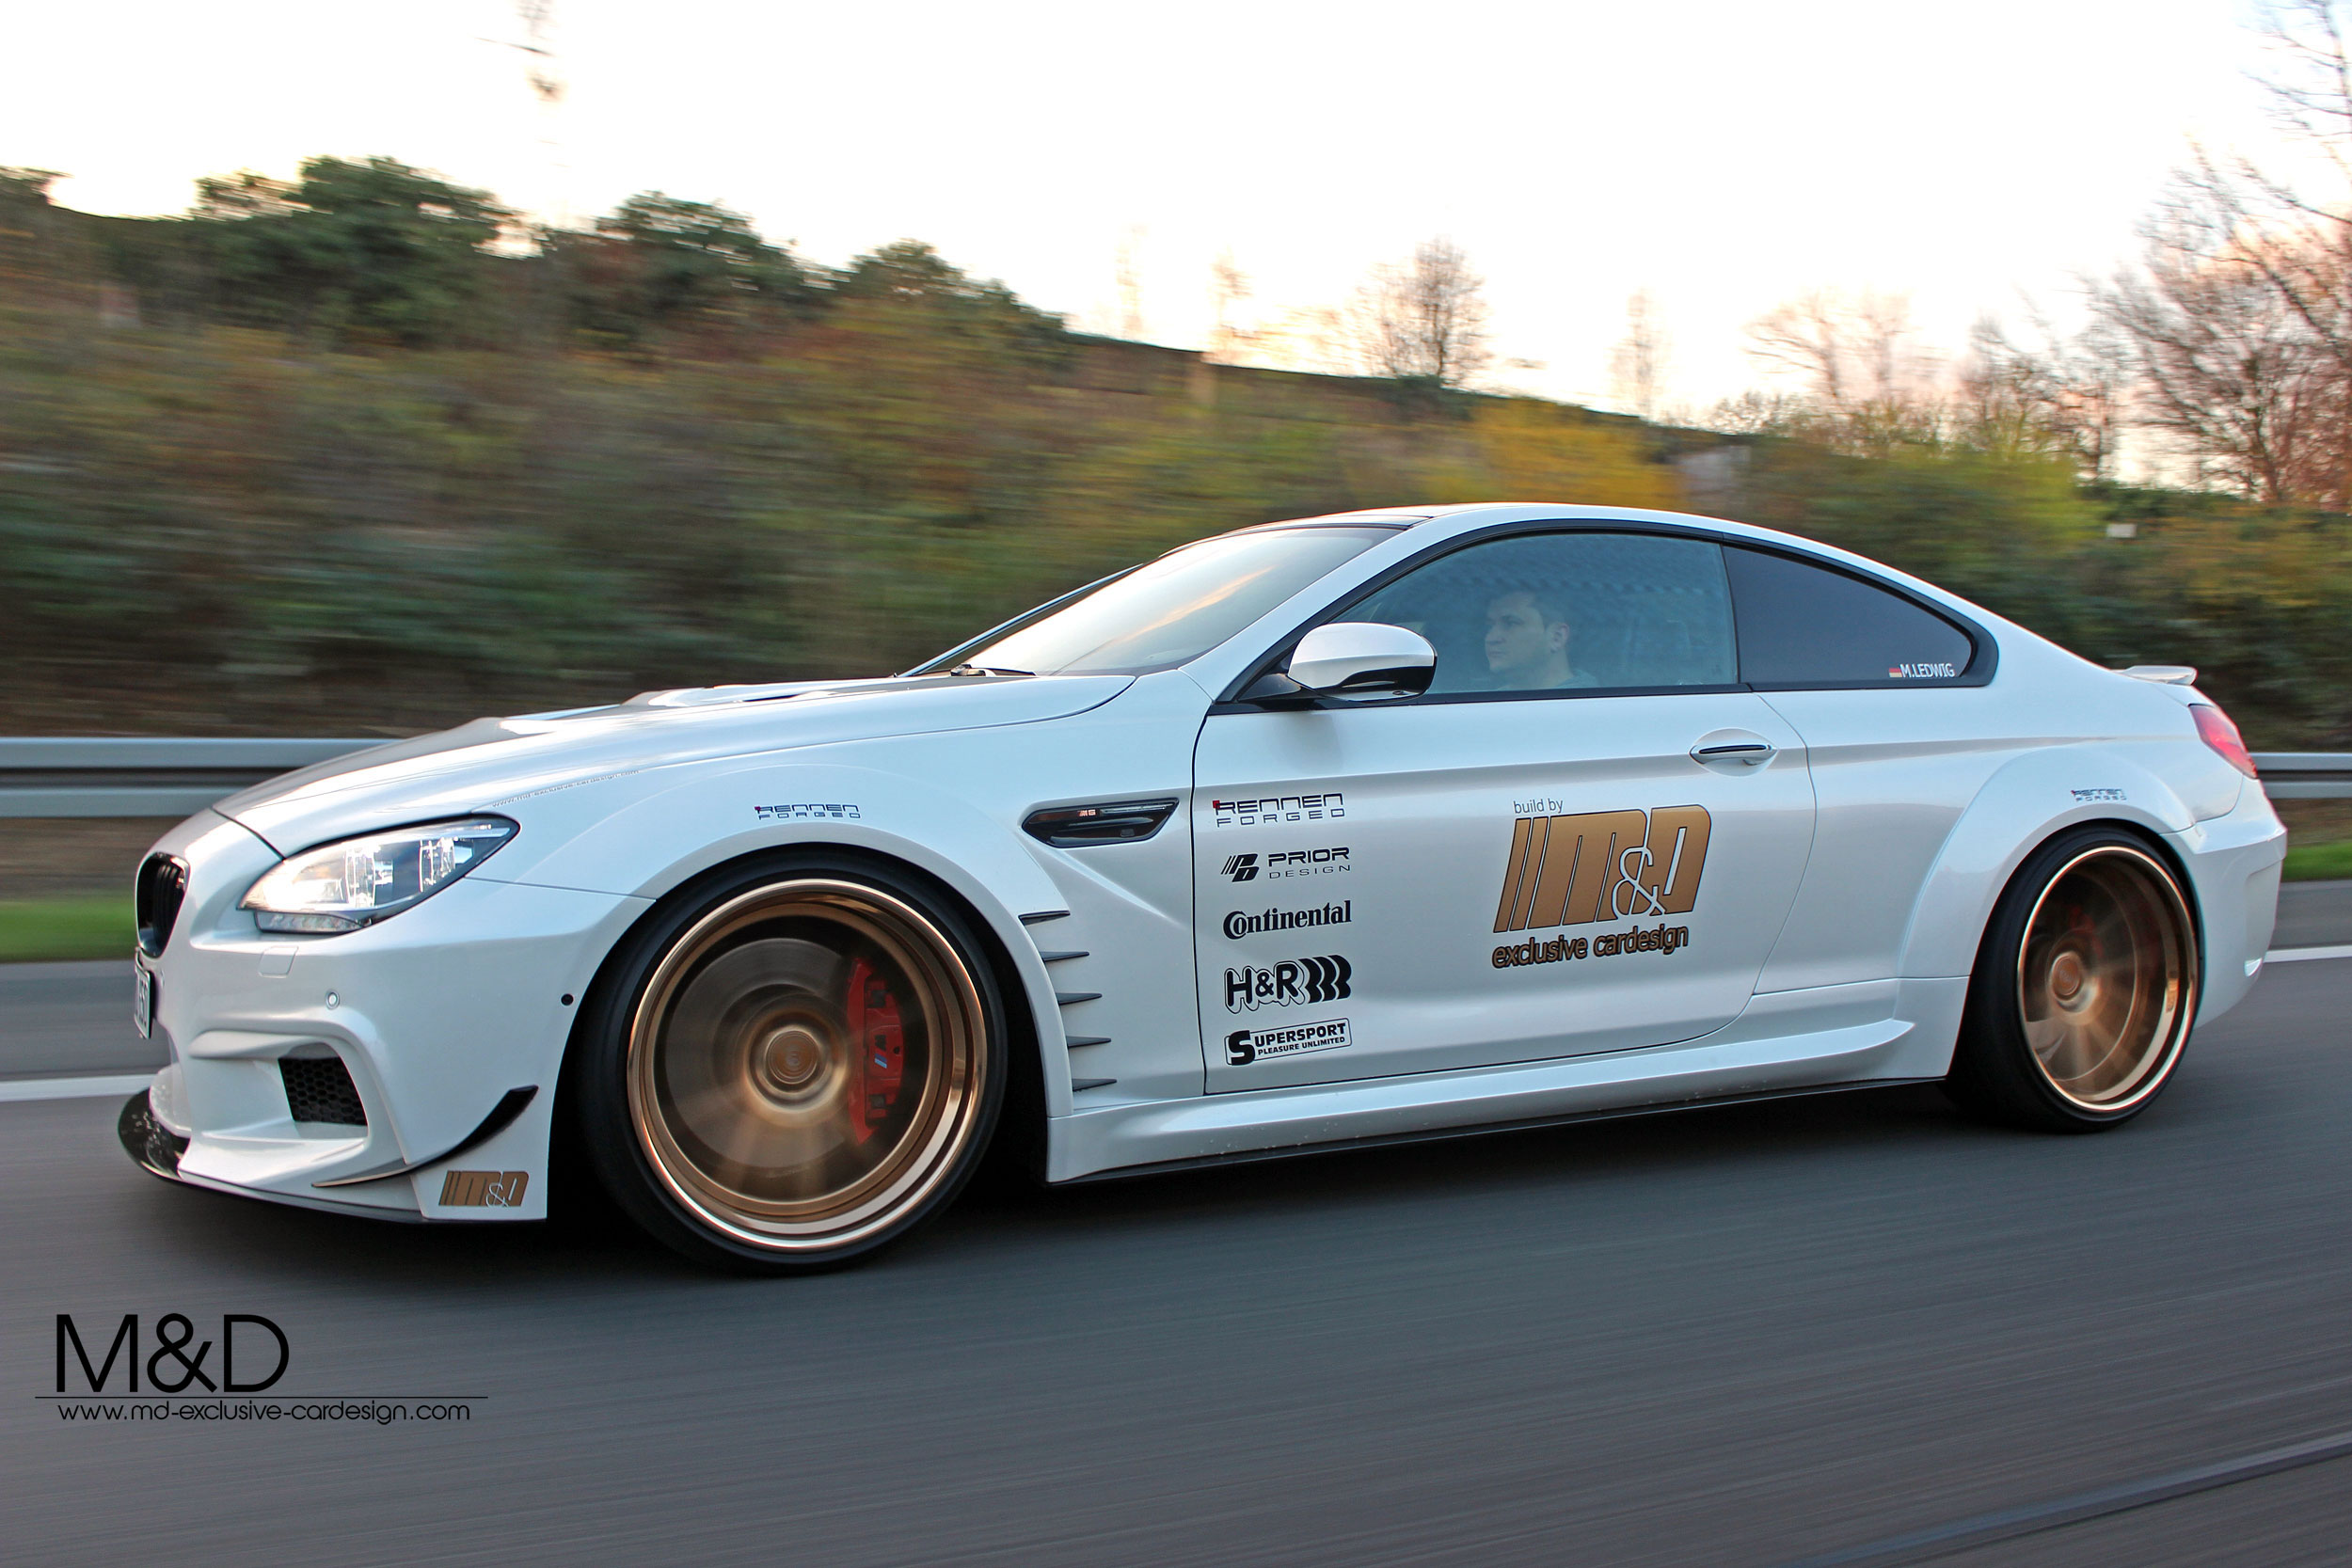 bmw-650i-coupé-pd6xx-f13-md-exclusive-cardesign-018